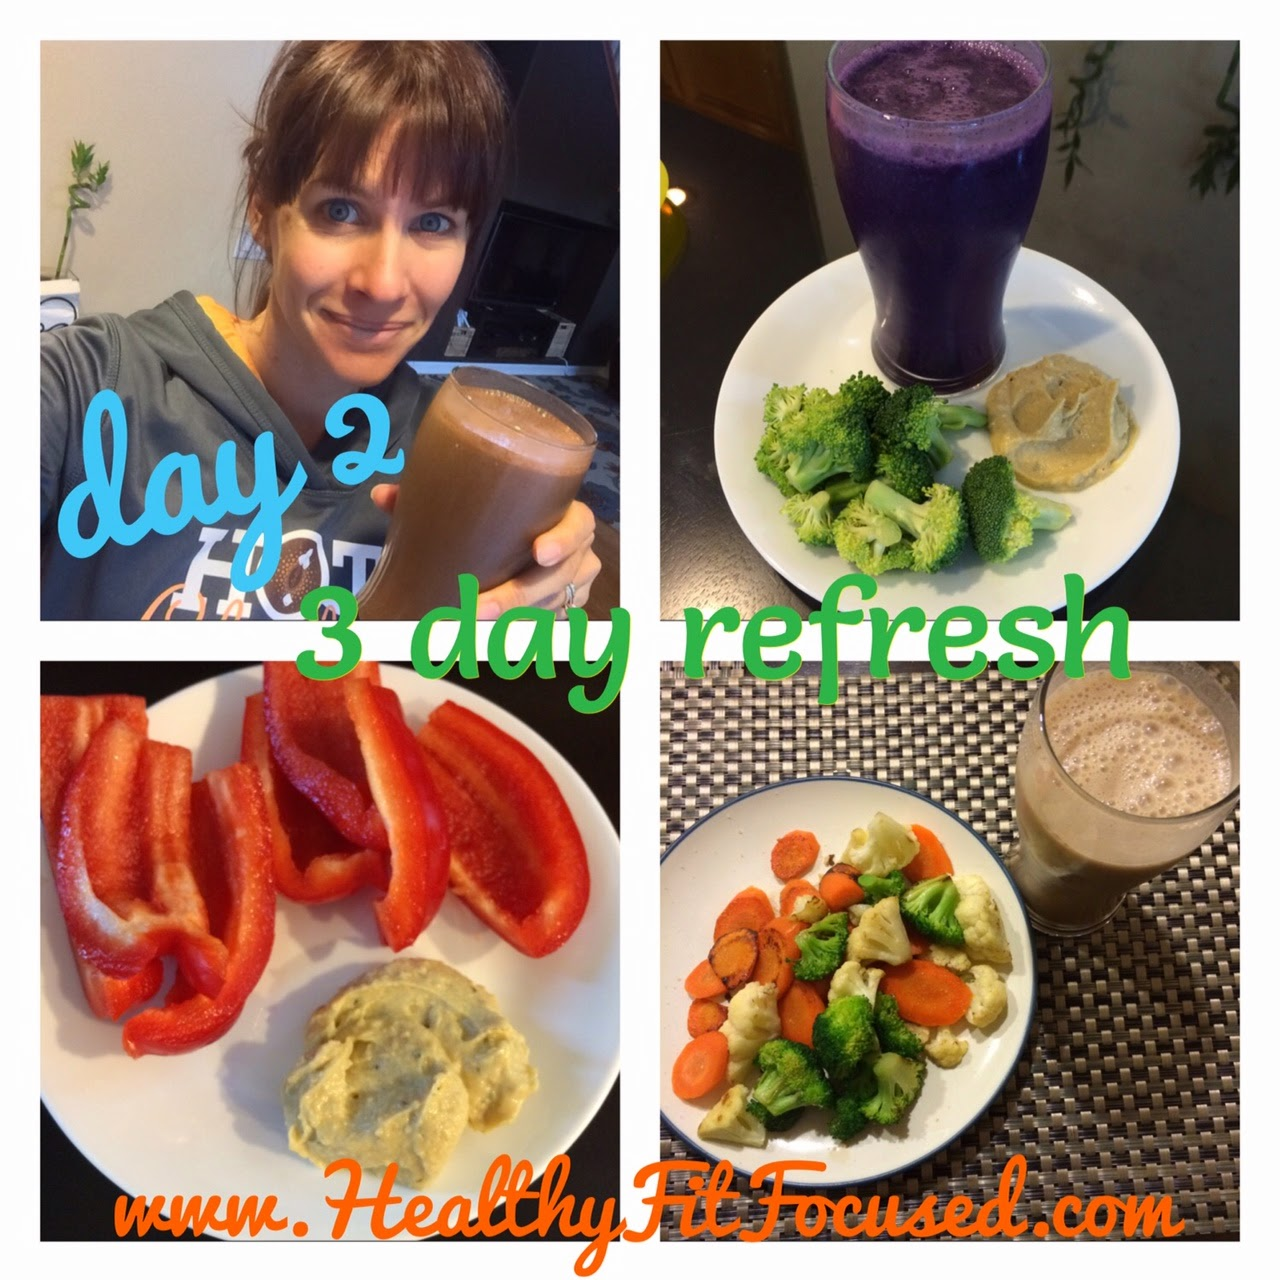 3 day Refresh Update and Review, Julie Little, www.HealthyFitFocused.com